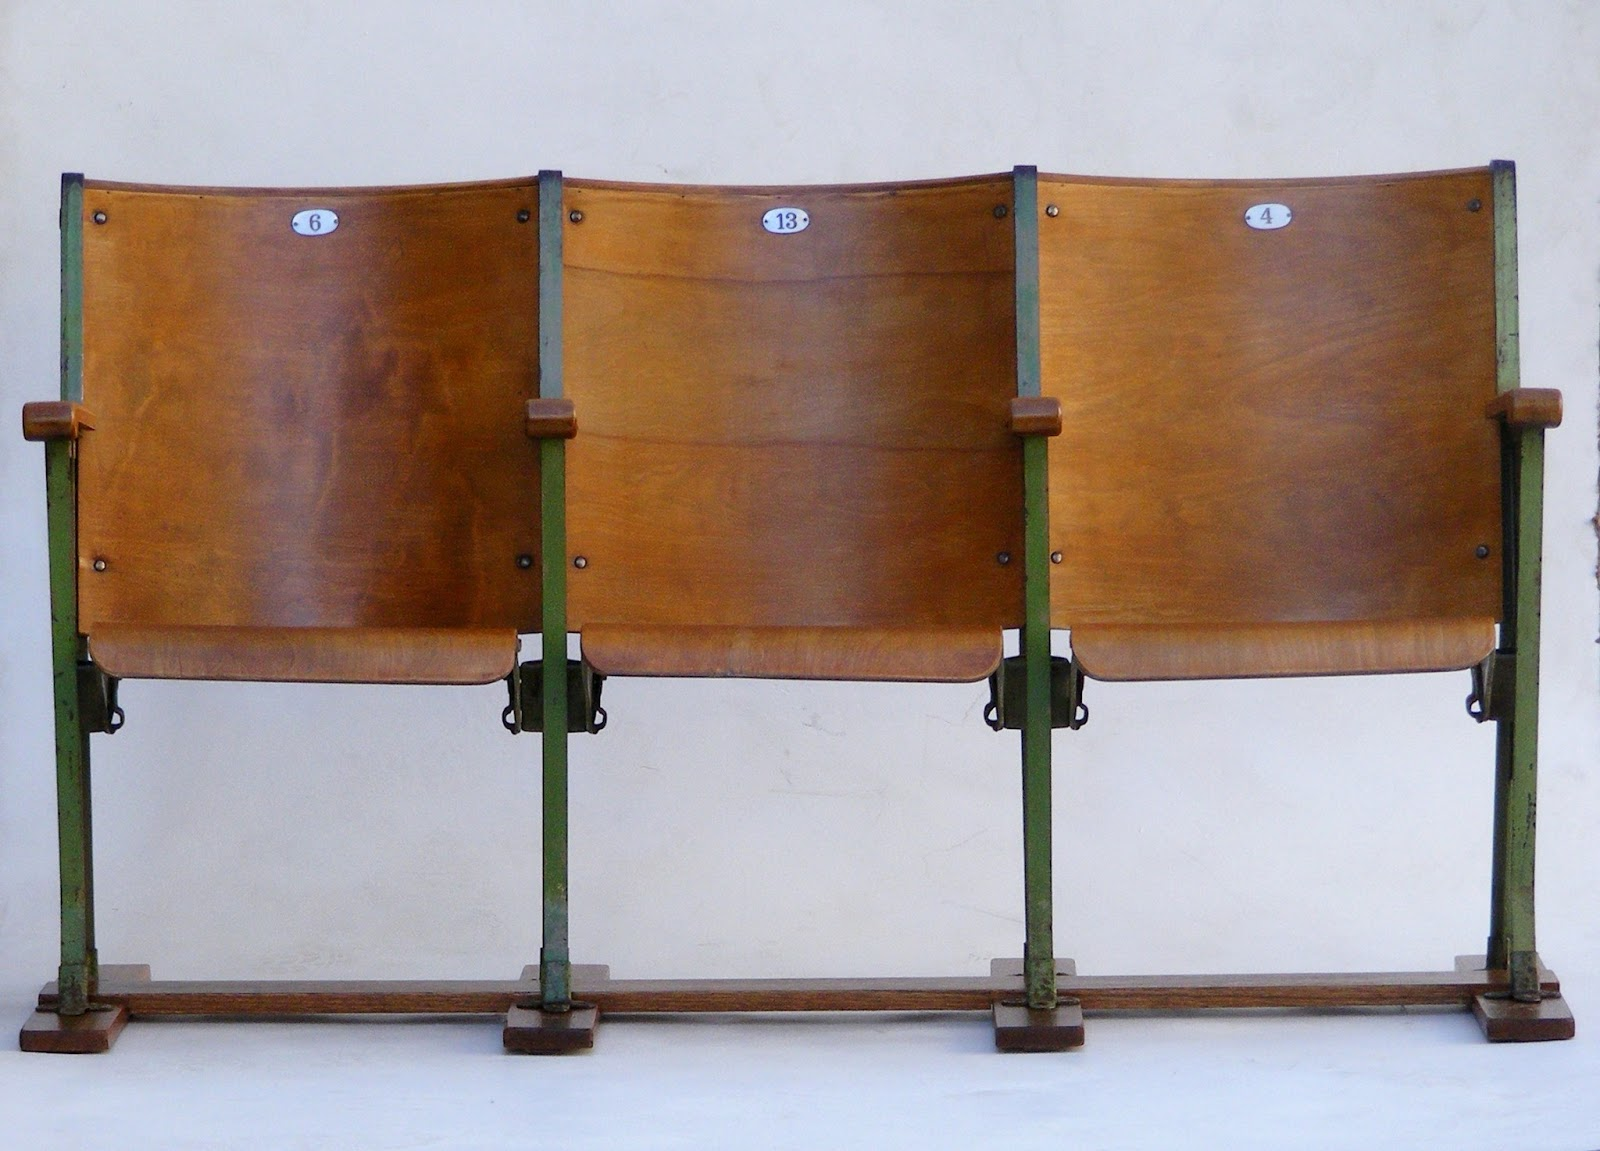 Antique theater chairs - A Pair Of Original Vintage Theater Seats 3 Chairs On Each Seats Can Go Up And Down Length 158cm Height Of Back 86cm Height Of Seat 46cm